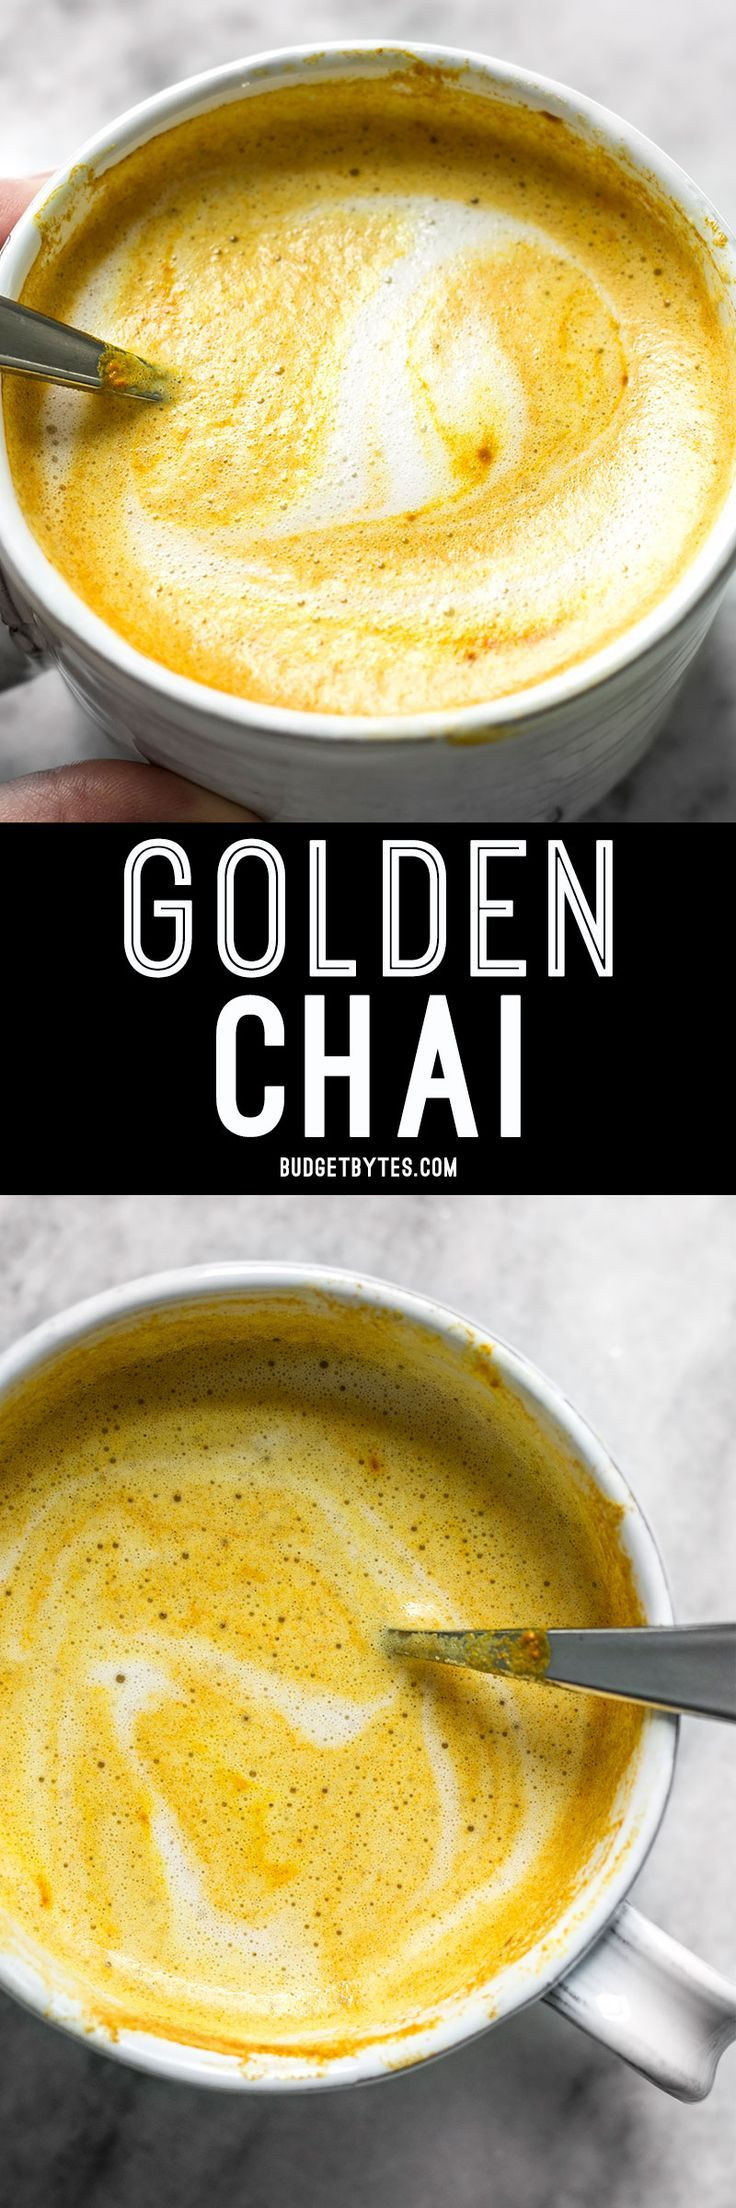 This Golden Chai is full of warm exotic spices, earthy turmeric, and just a hint of natural honey. It's warm, comforting, and perfect for fall! @budgetbytes